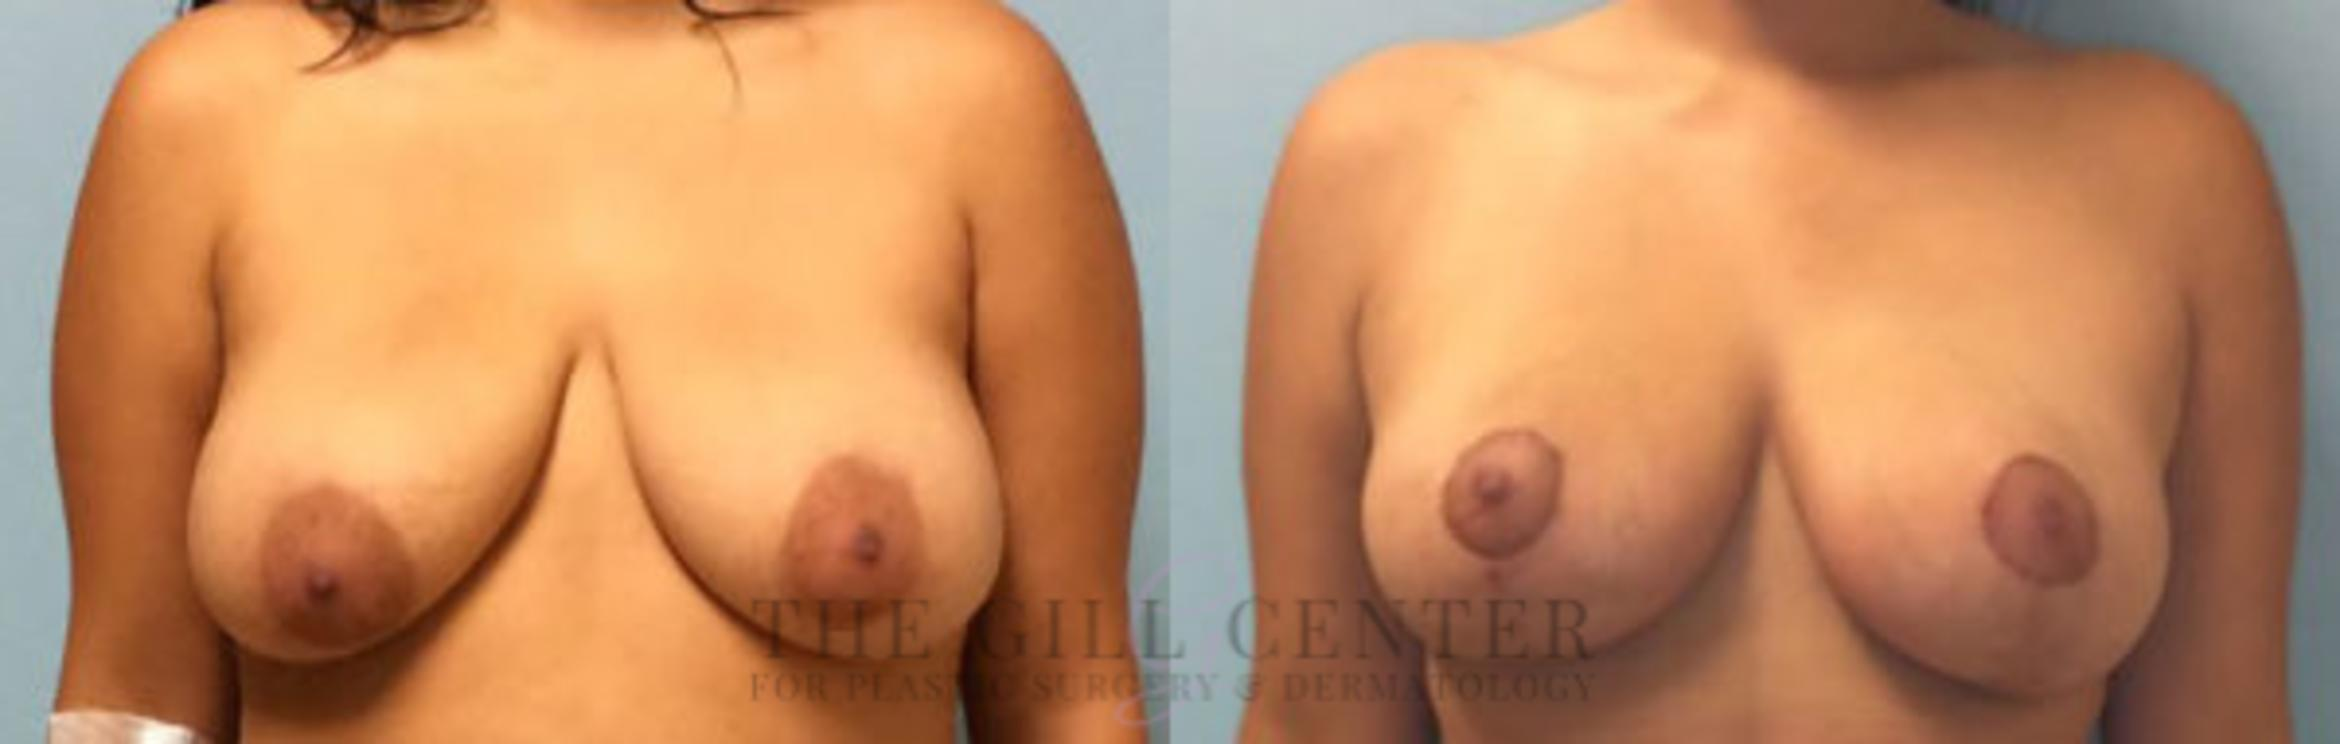 Breast Lift Case 76 Before & After Front | Shenandoah, TX | The Gill Center for Plastic Surgery and Dermatology